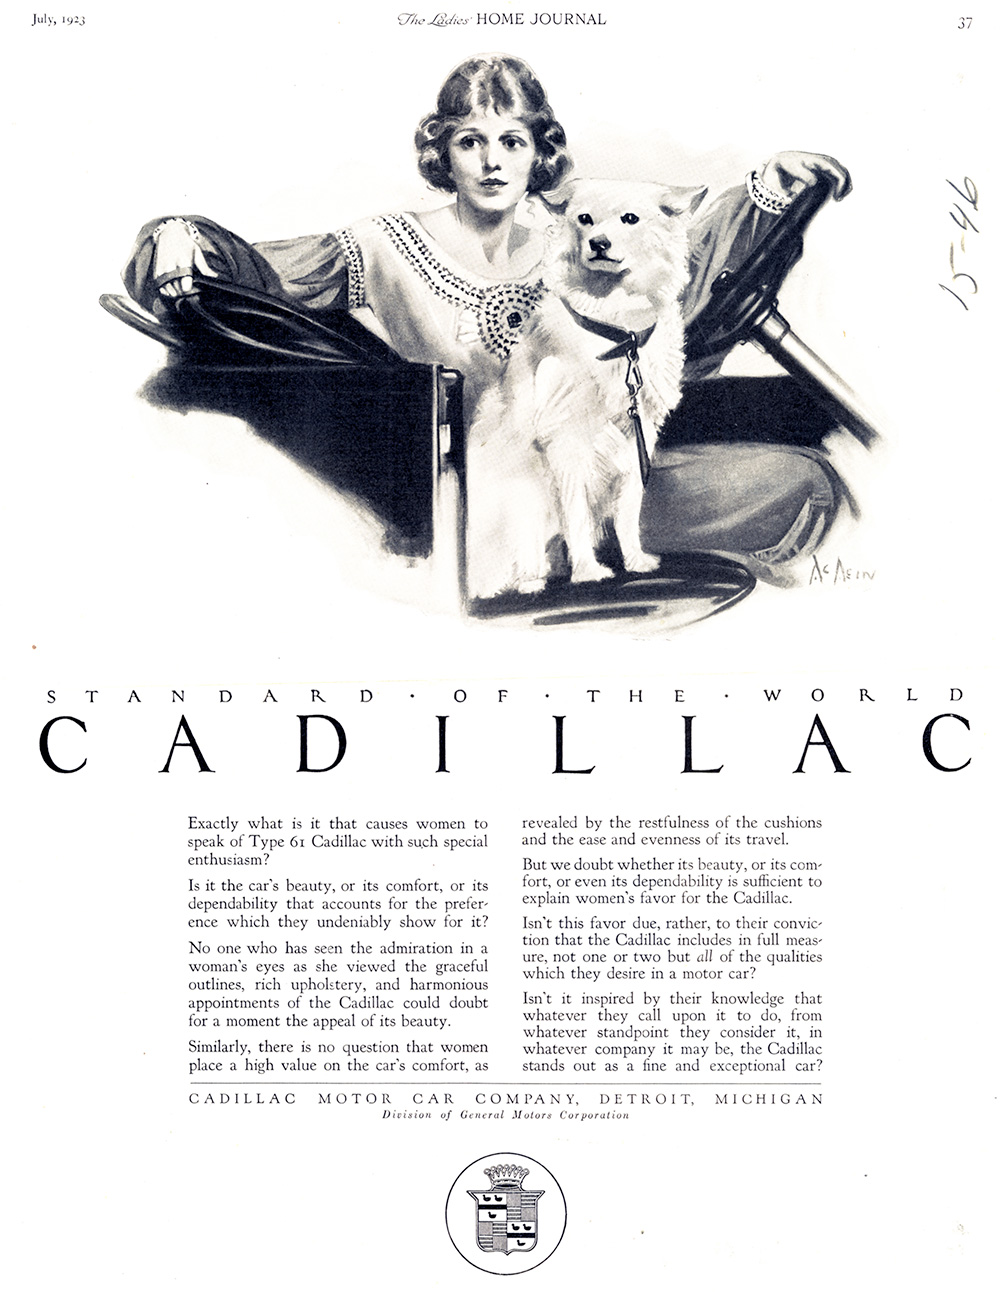 Neysa McMein, Print ad for Cadillac. The Ladies Home Journal. July 1923.